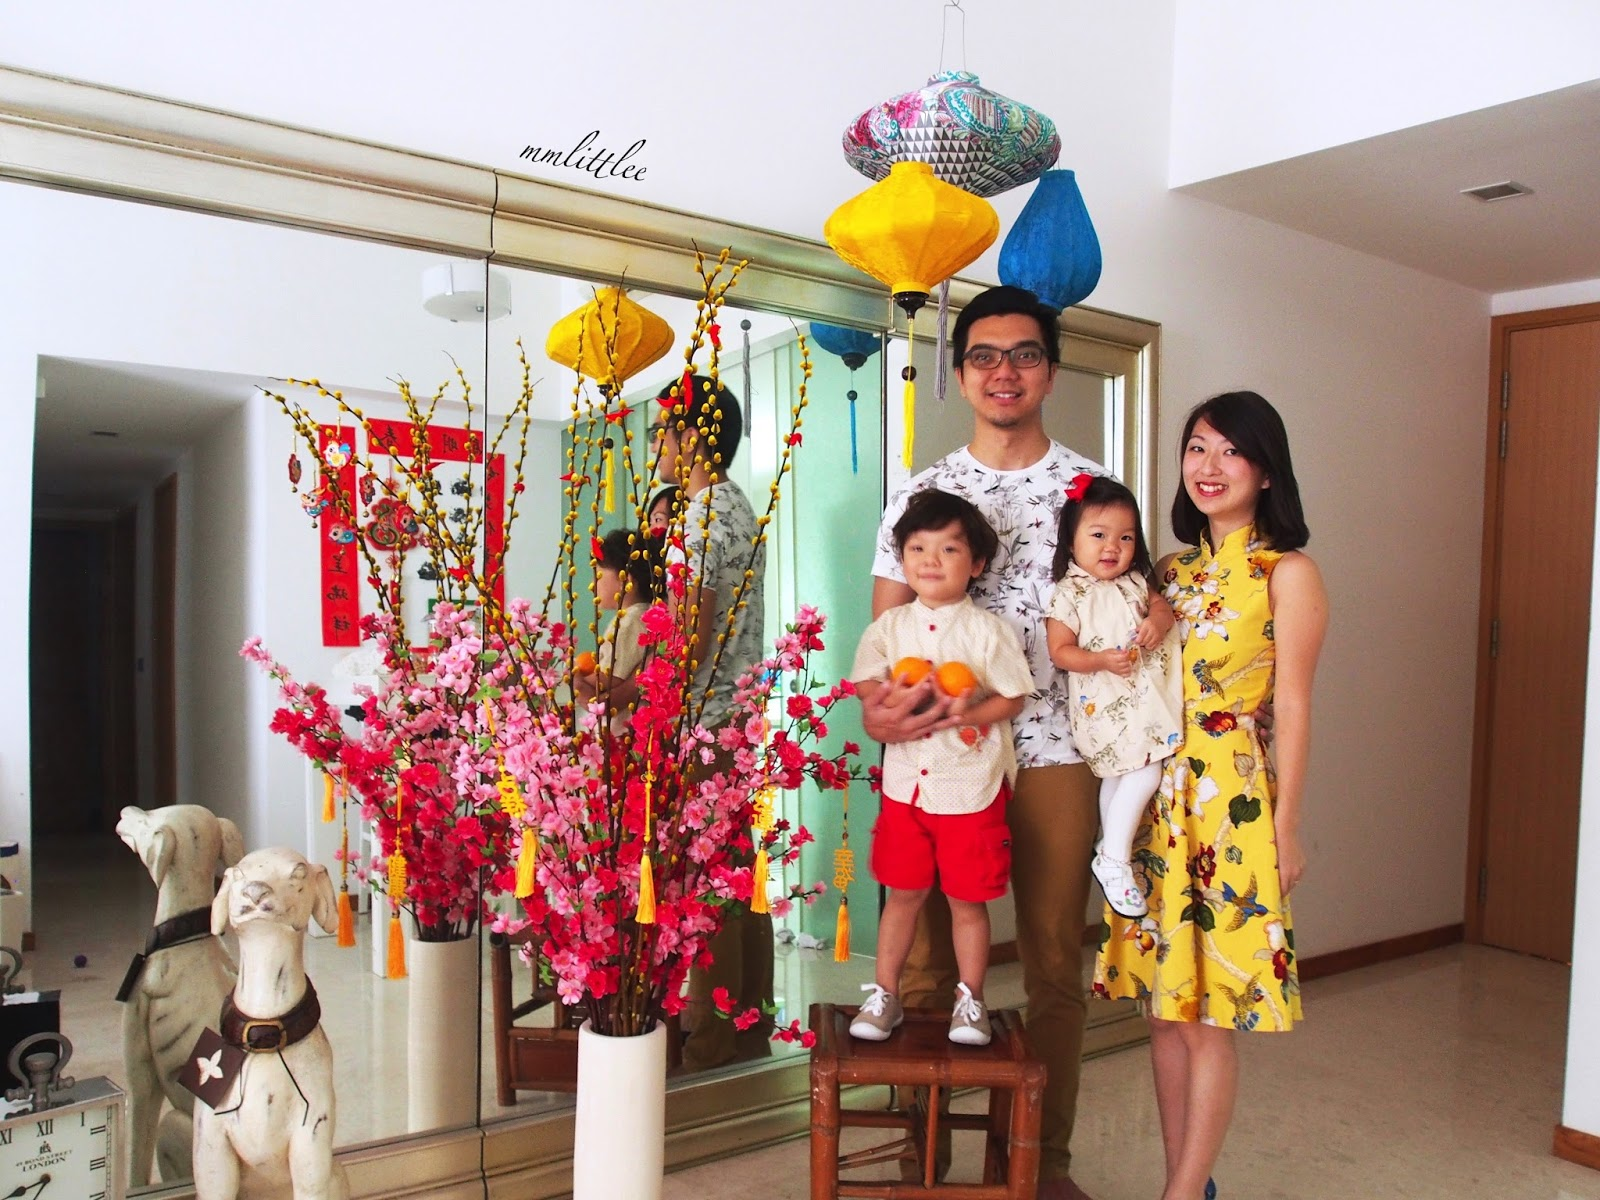 I Still Buy Us All New Sets Of Clothes For The First Day Of Chinese New Year.  Photographing The Family In Our 新衣裳 [new Clothes] Completes The Picture.